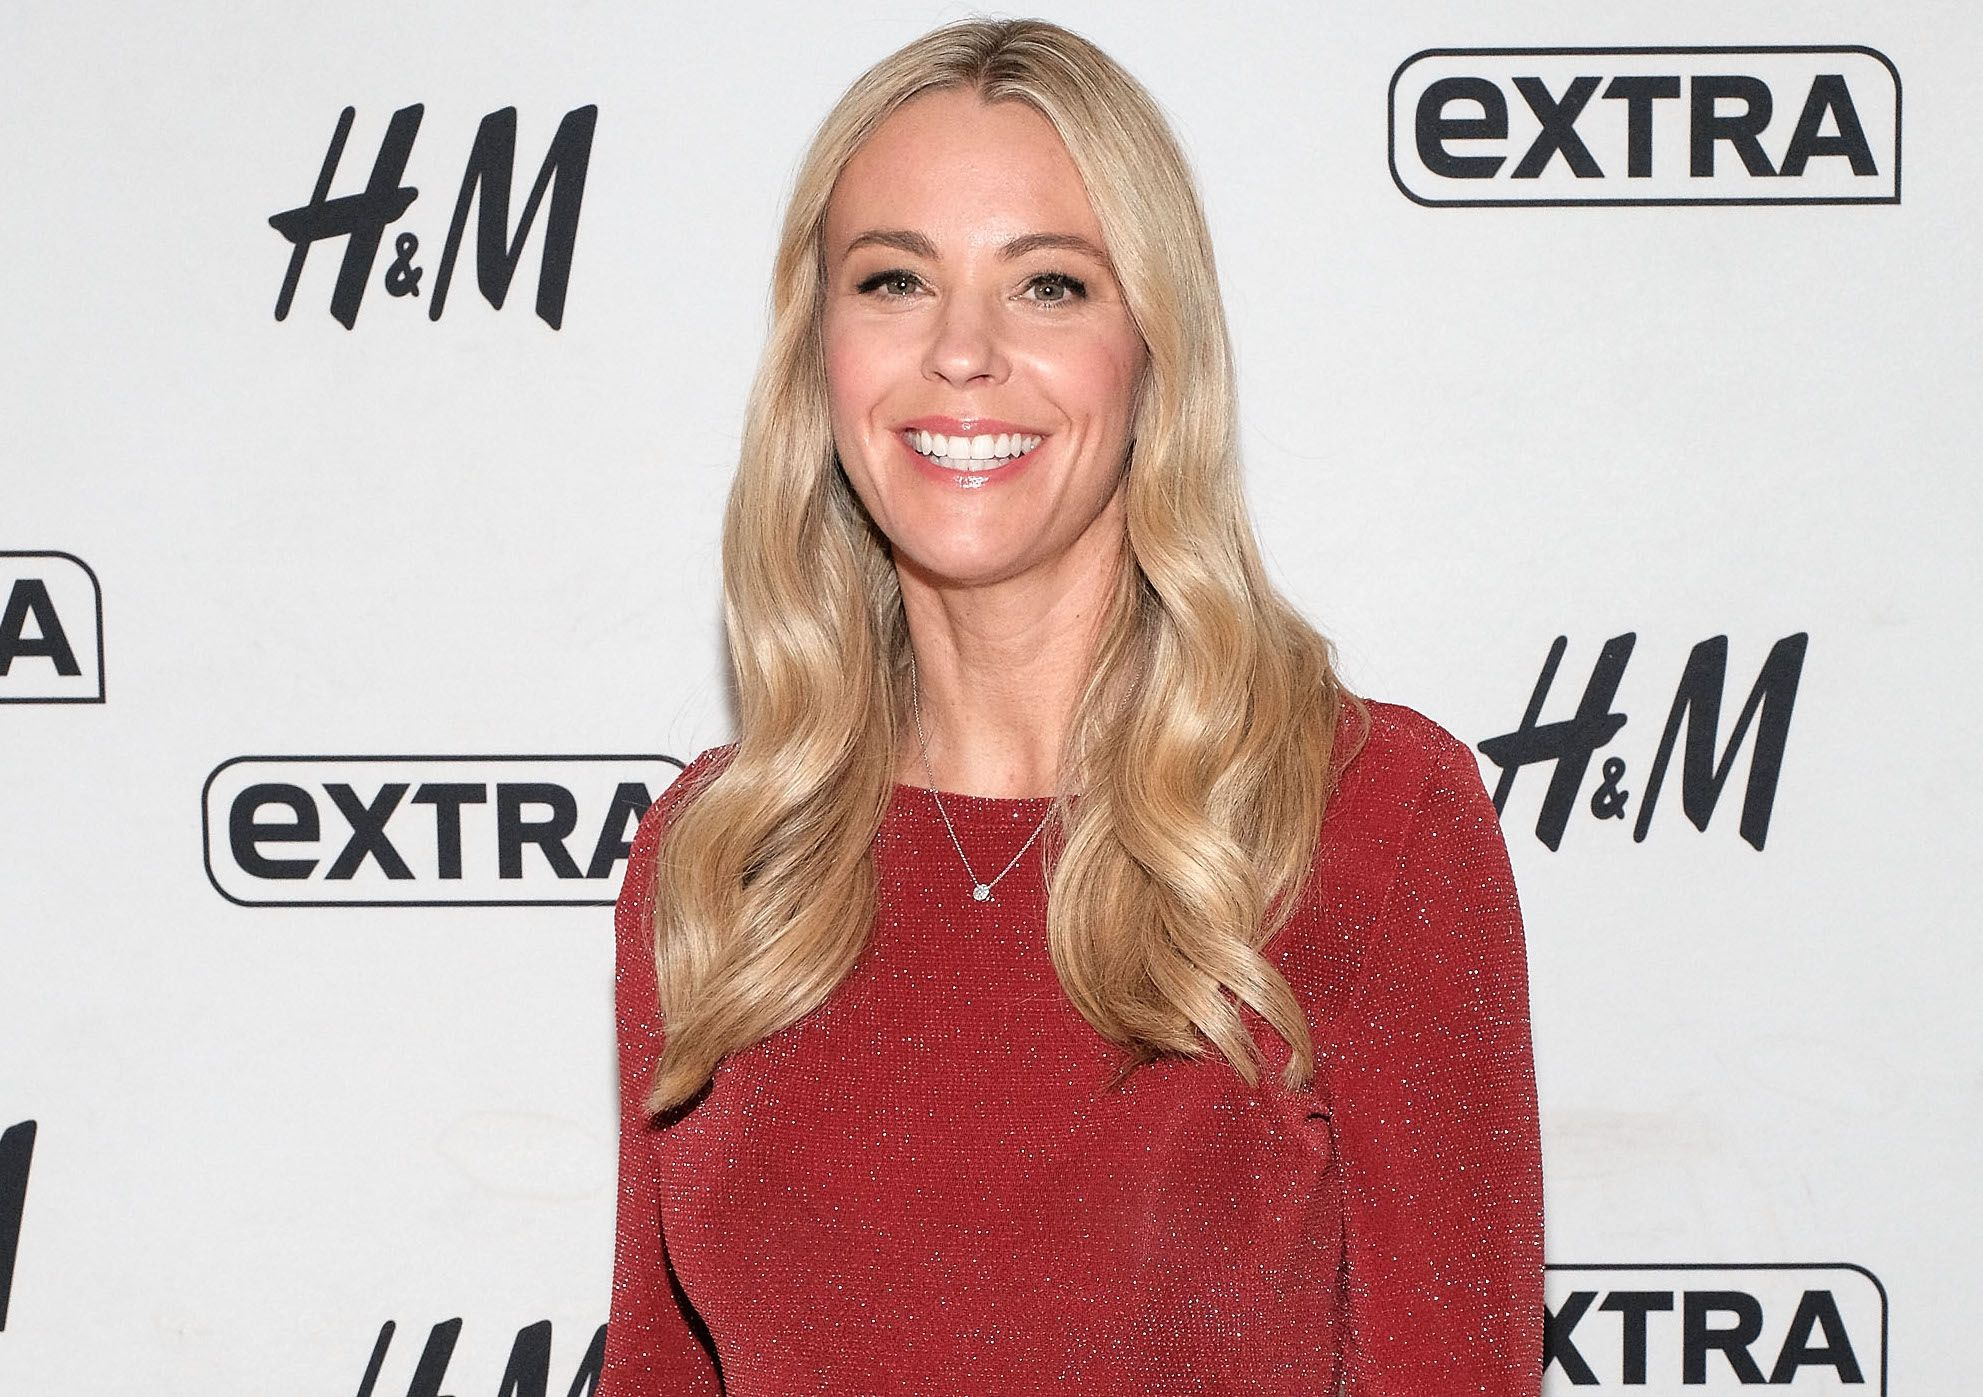 Kate Gosselin Heavily Criticized After Sharing Halloween Photo Of Her Kids - Fame10